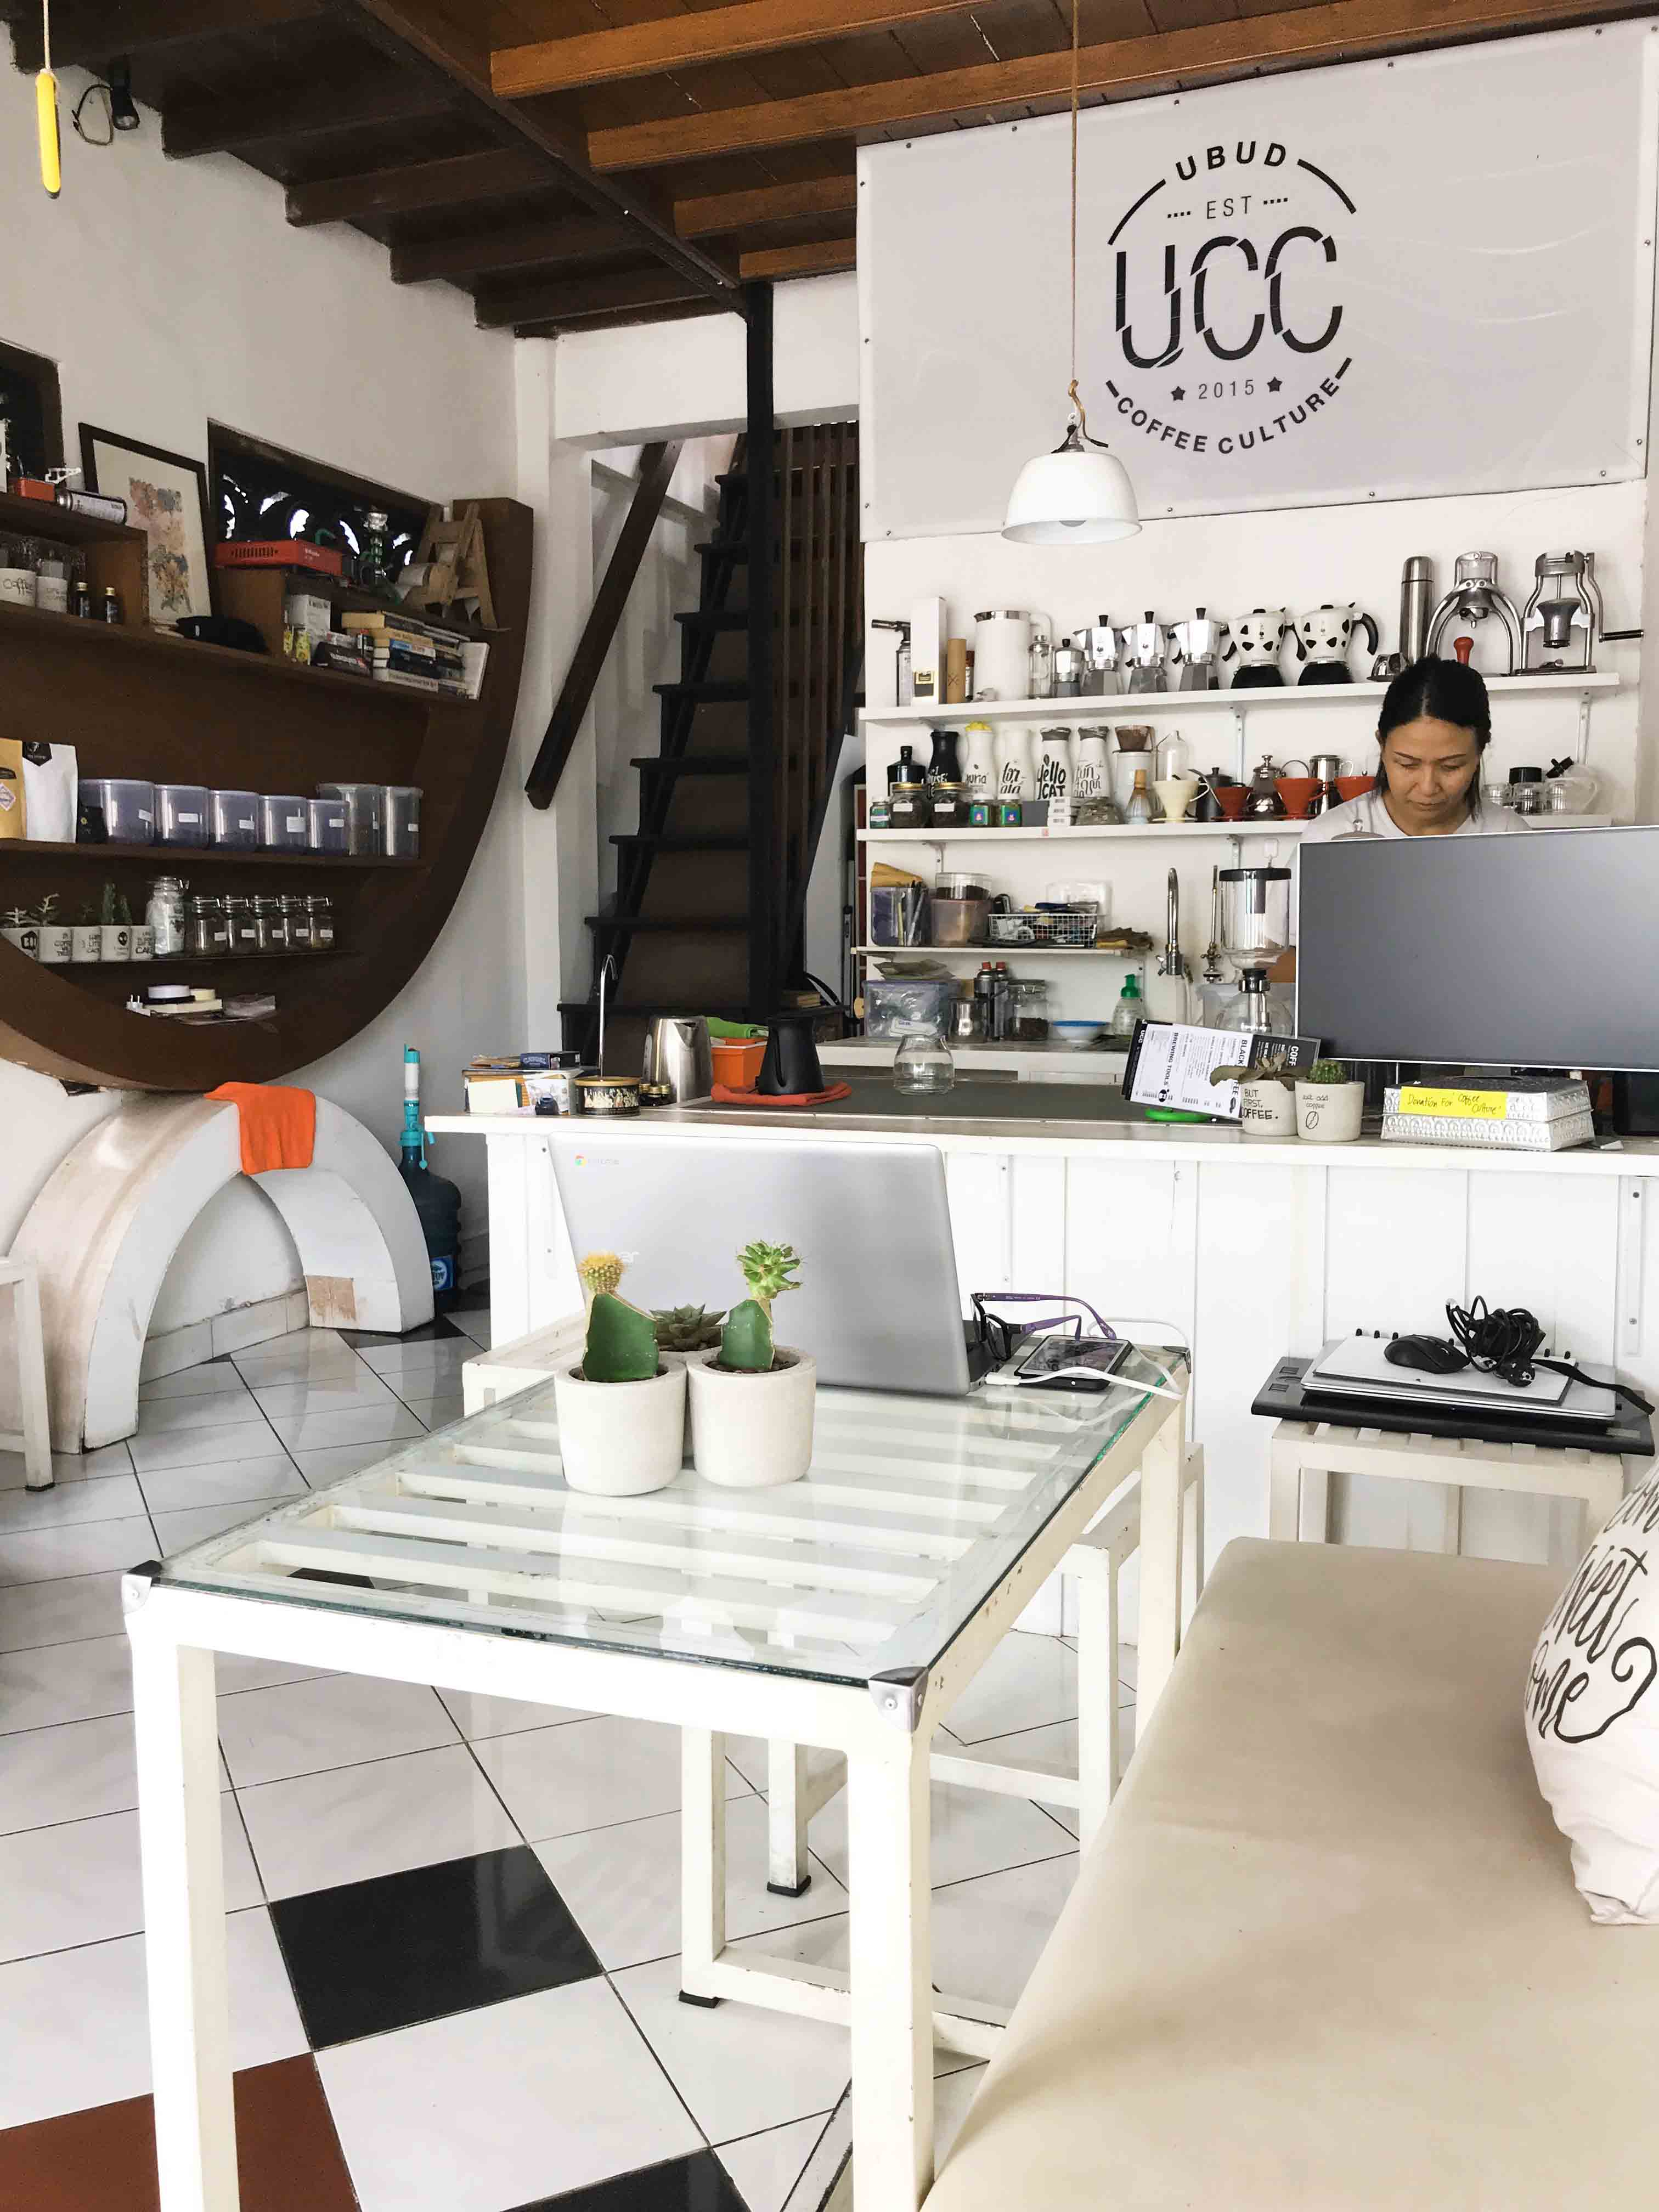 Ubud Coffee Culture   My Top 12 Speciality Coffee and Brunch Shops in Bali   A Guide of Bali   Mondomulia